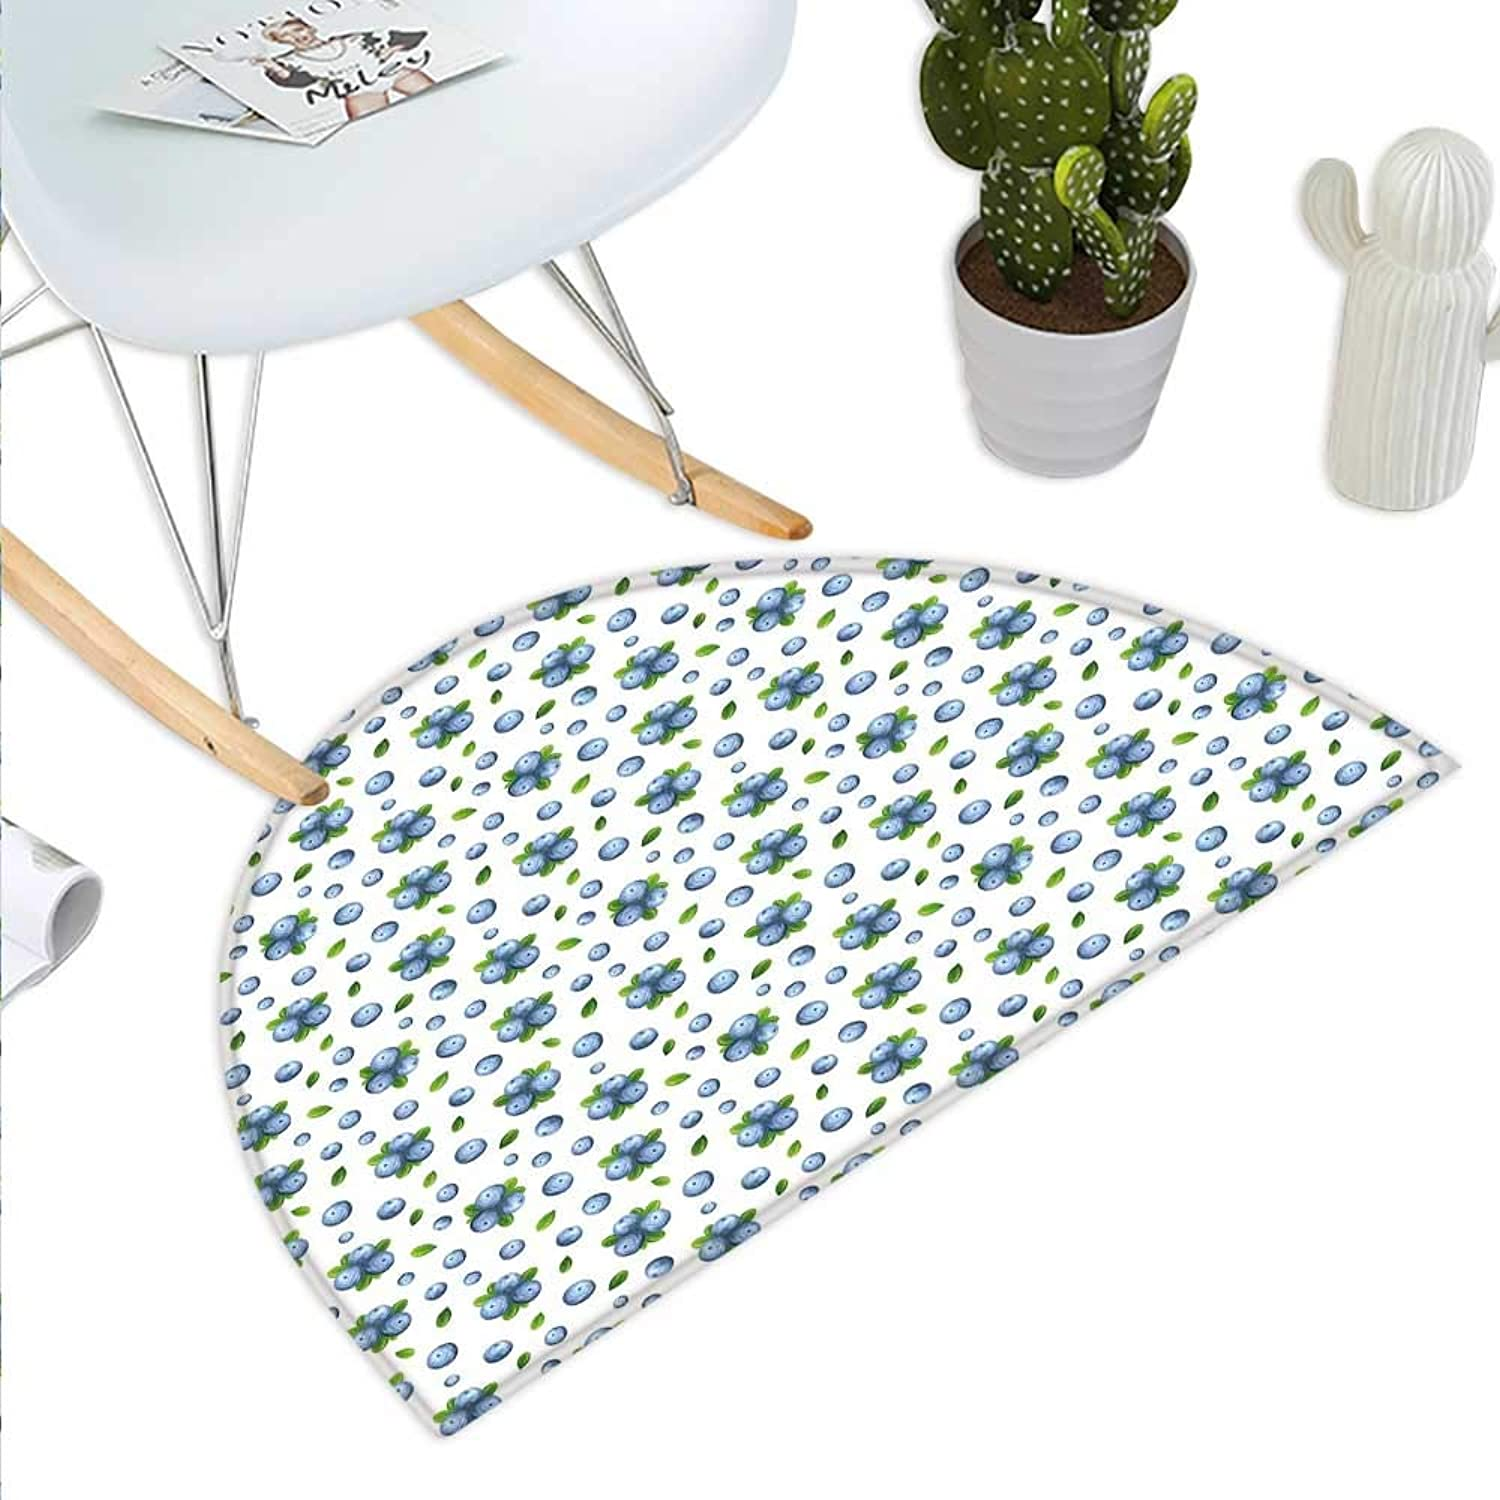 Kitchen Wall Semicircle Doormat Fresh blueeberries Ripe Juicy Fruits Summer Organics Food Painting Style Halfmoon doormats H 47.2  xD 70.8  bluee Green White